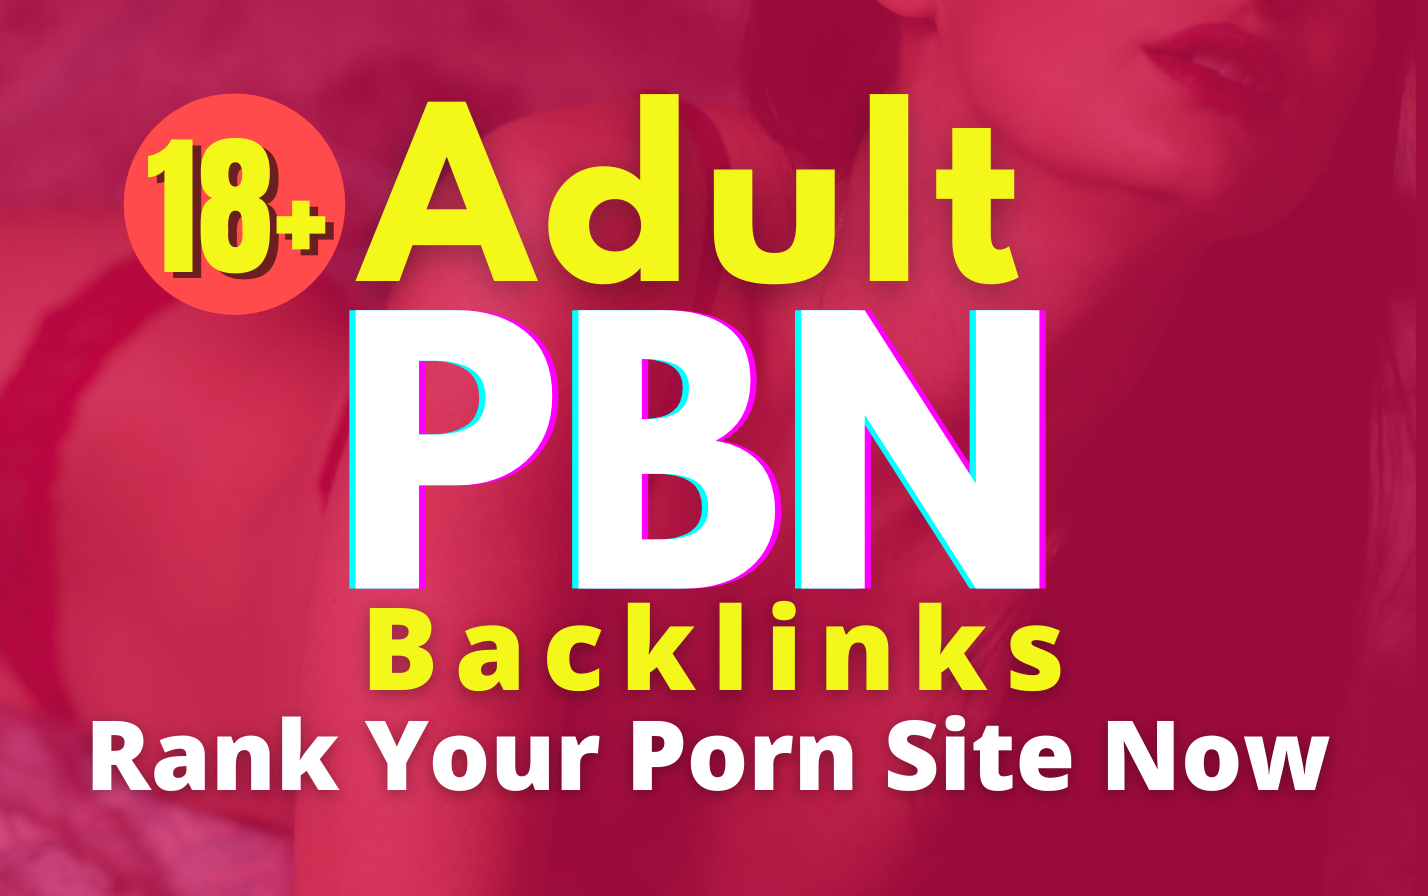 I will create 150 adult niche related PBN backlinks for Rank Your Porn Site